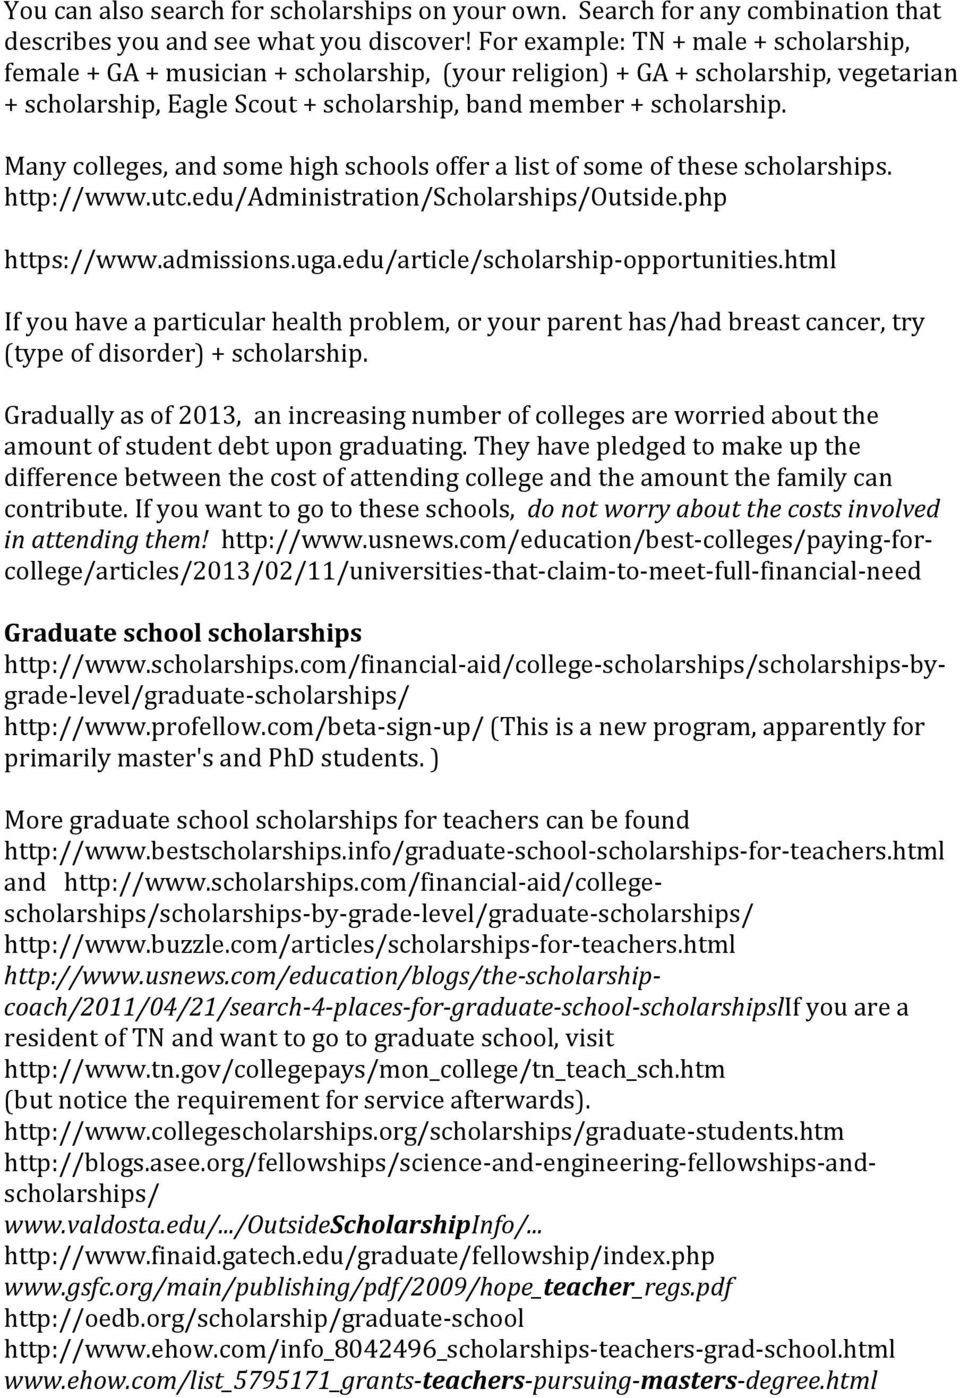 Many colleges, and some high schools offer a list of some of these scholarships. http://www.utc.edu/administration/scholarships/outside.php https://www.admissions.uga.